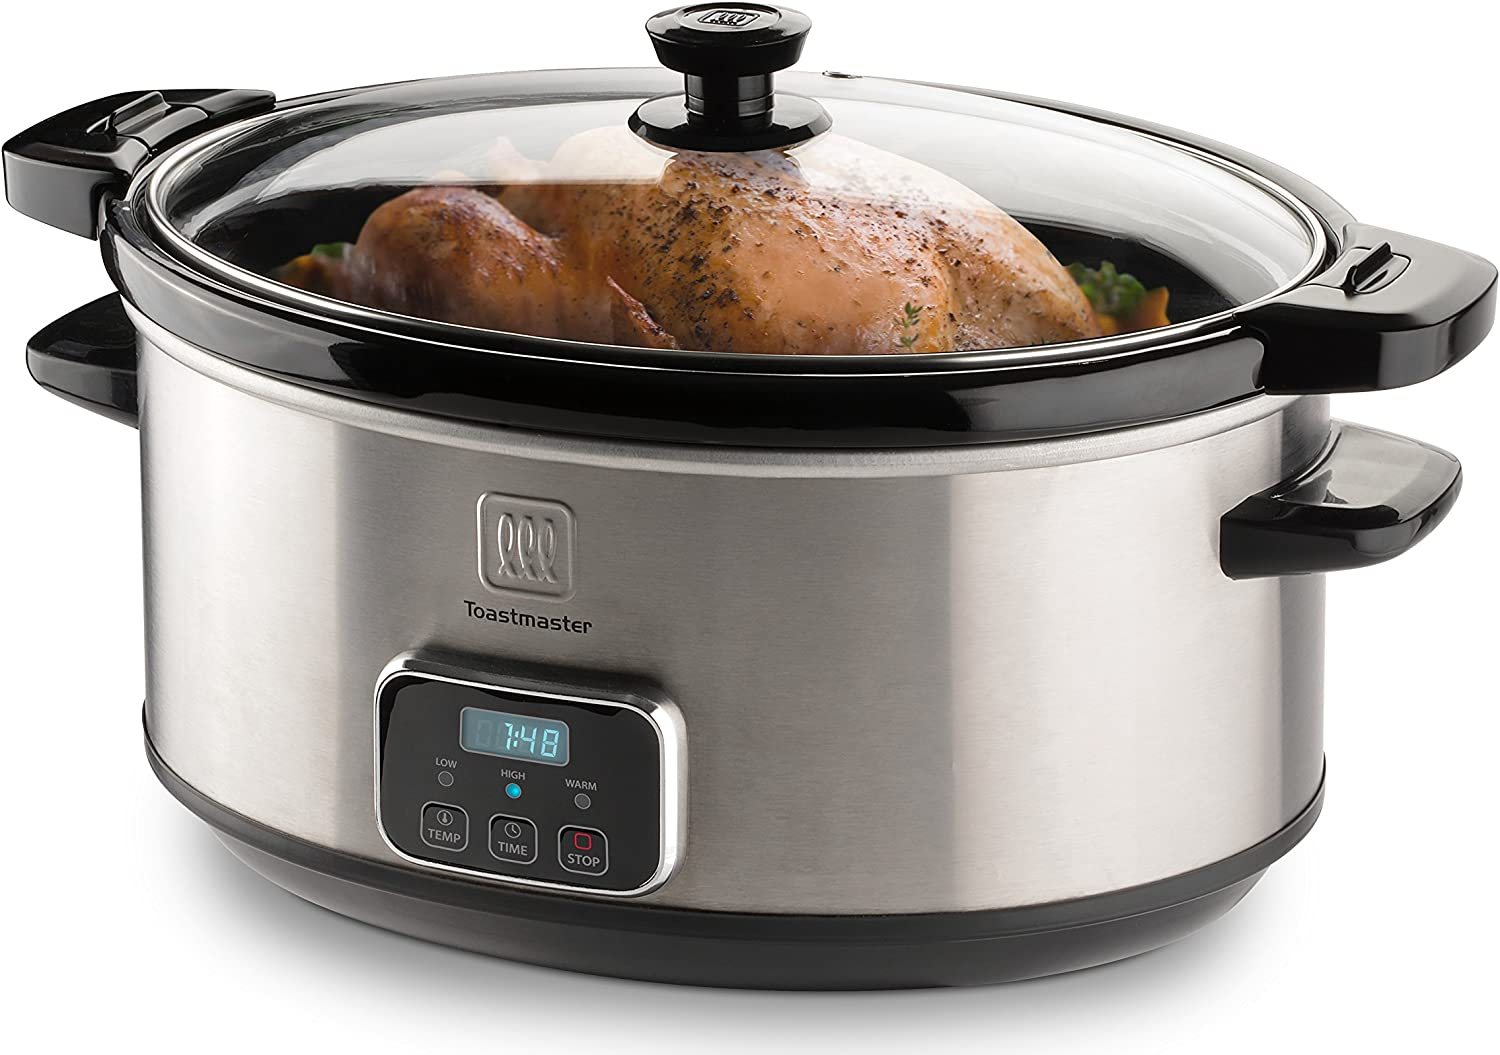 Toastmaster 7-Quart Oval Digital Slow Cooker with Locking Lid